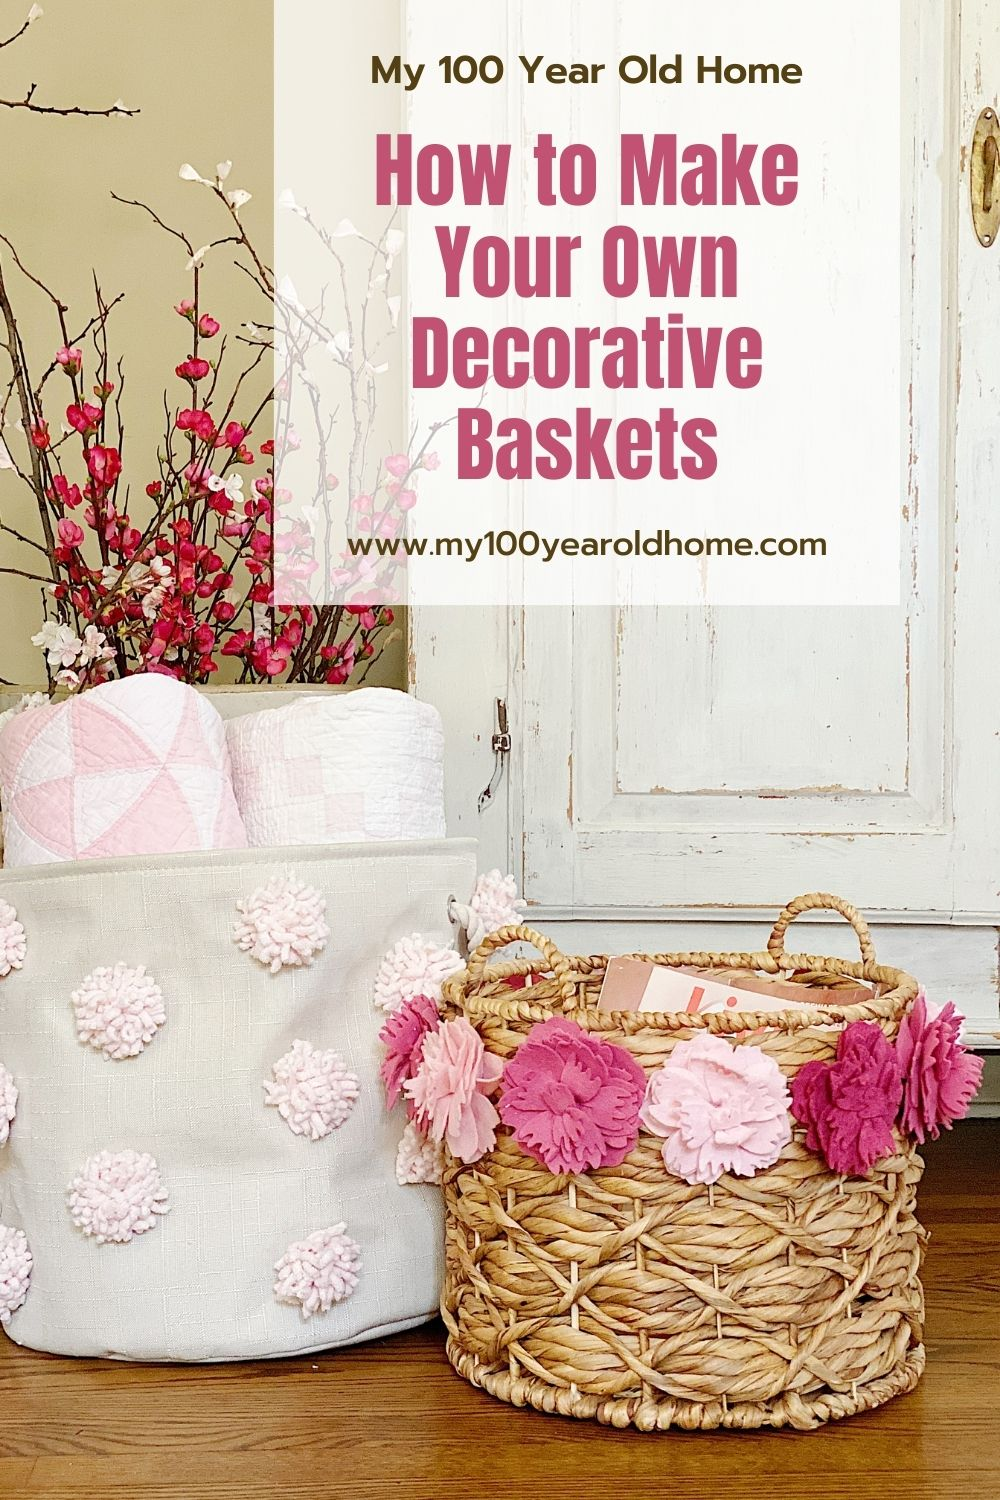 I am always looking for ways to make things look prettier in our home. Today I am sharing two decorative baskets I made with pom poms and felt.